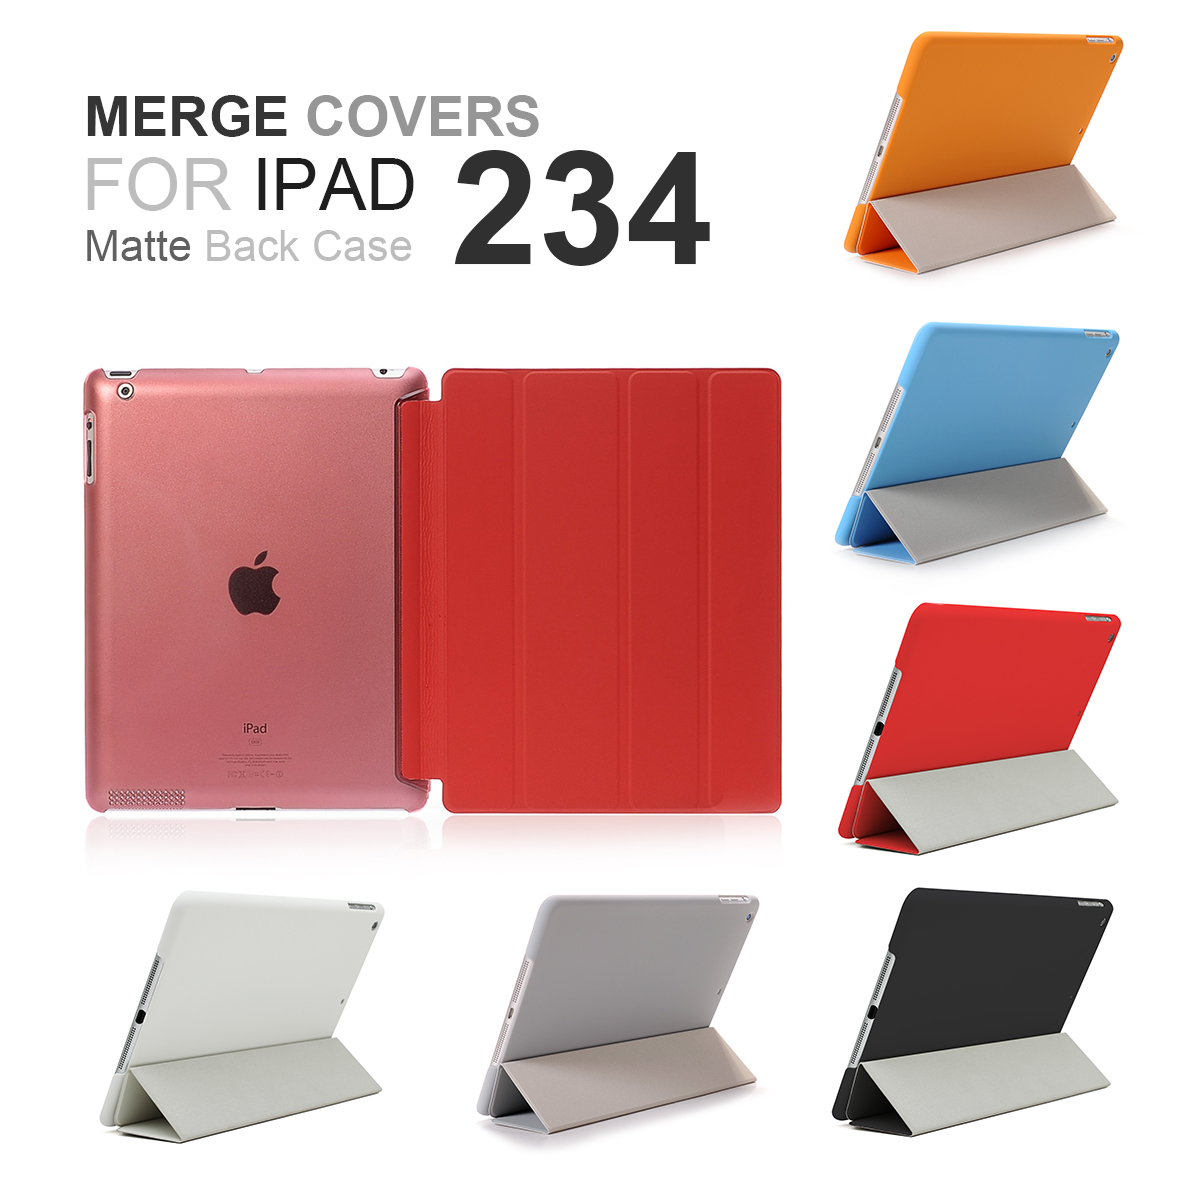 New PU Leather Magnet Slime Ultra Thin Transparent Crystal Back Merge Part Tri-fold Anti-scratch Case Cover For iPad 2 3 4(China (Mainland))